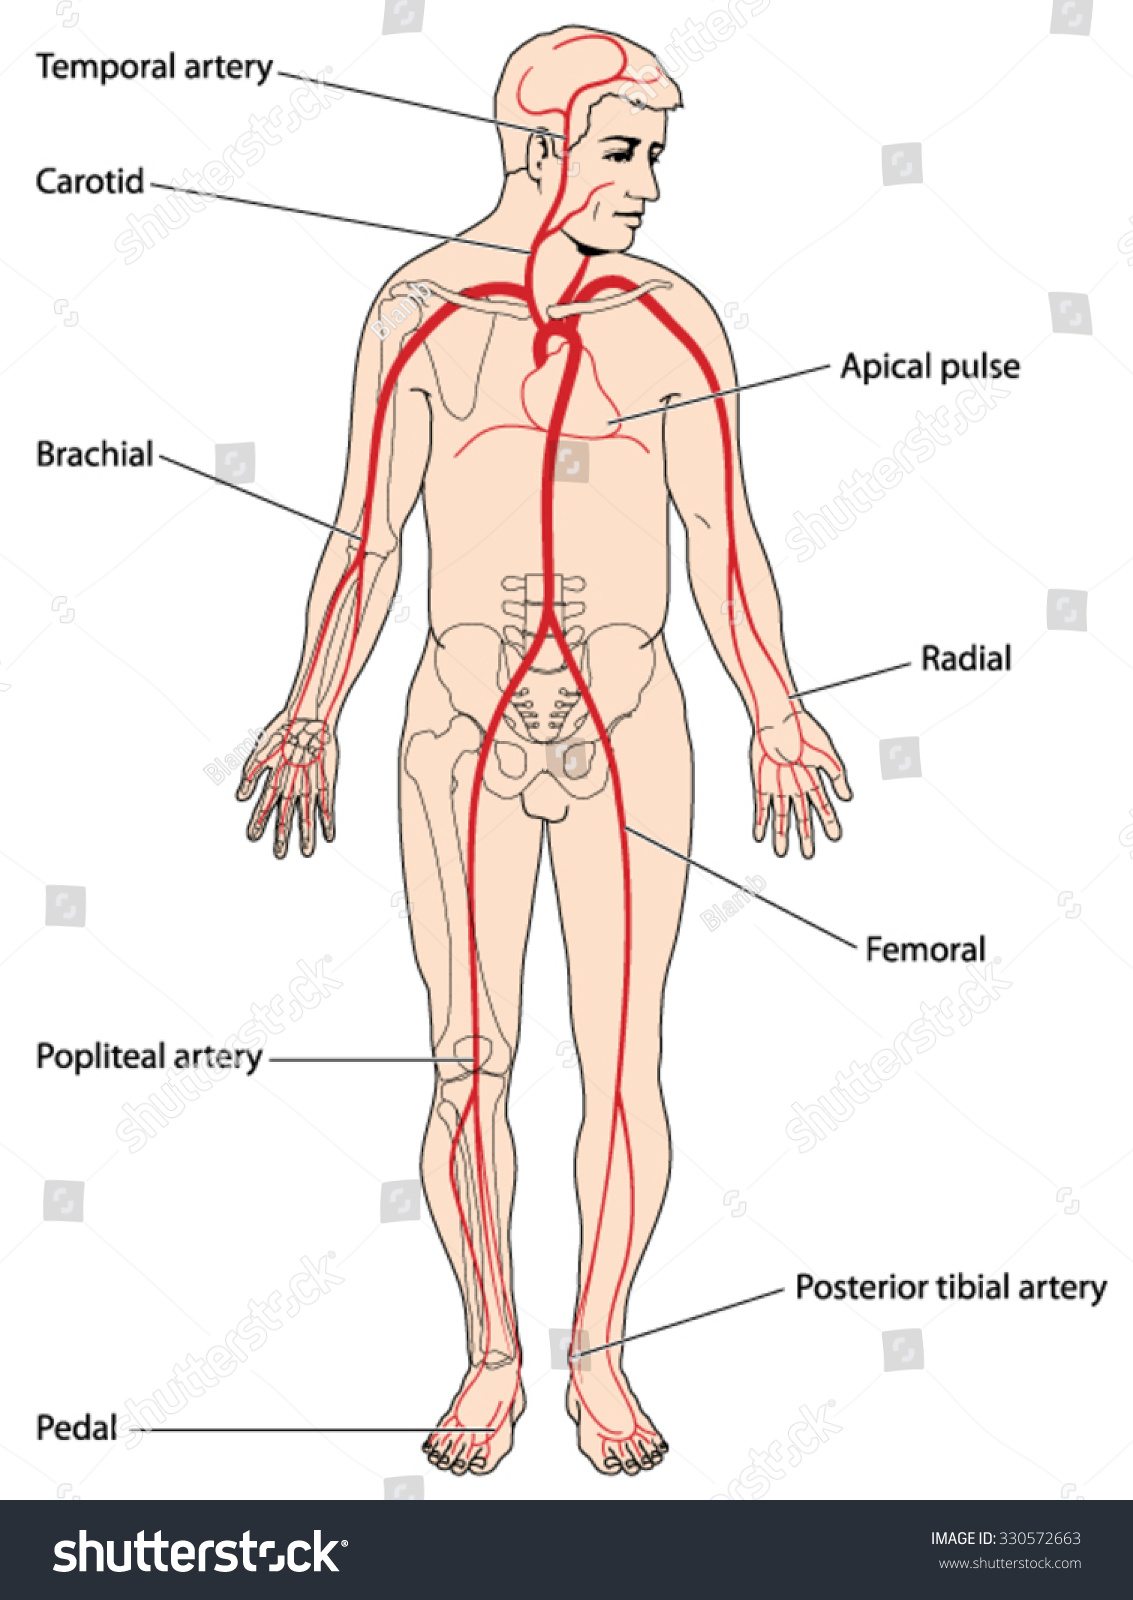 The Major Arteries And Pulse Points Of Stock Photo